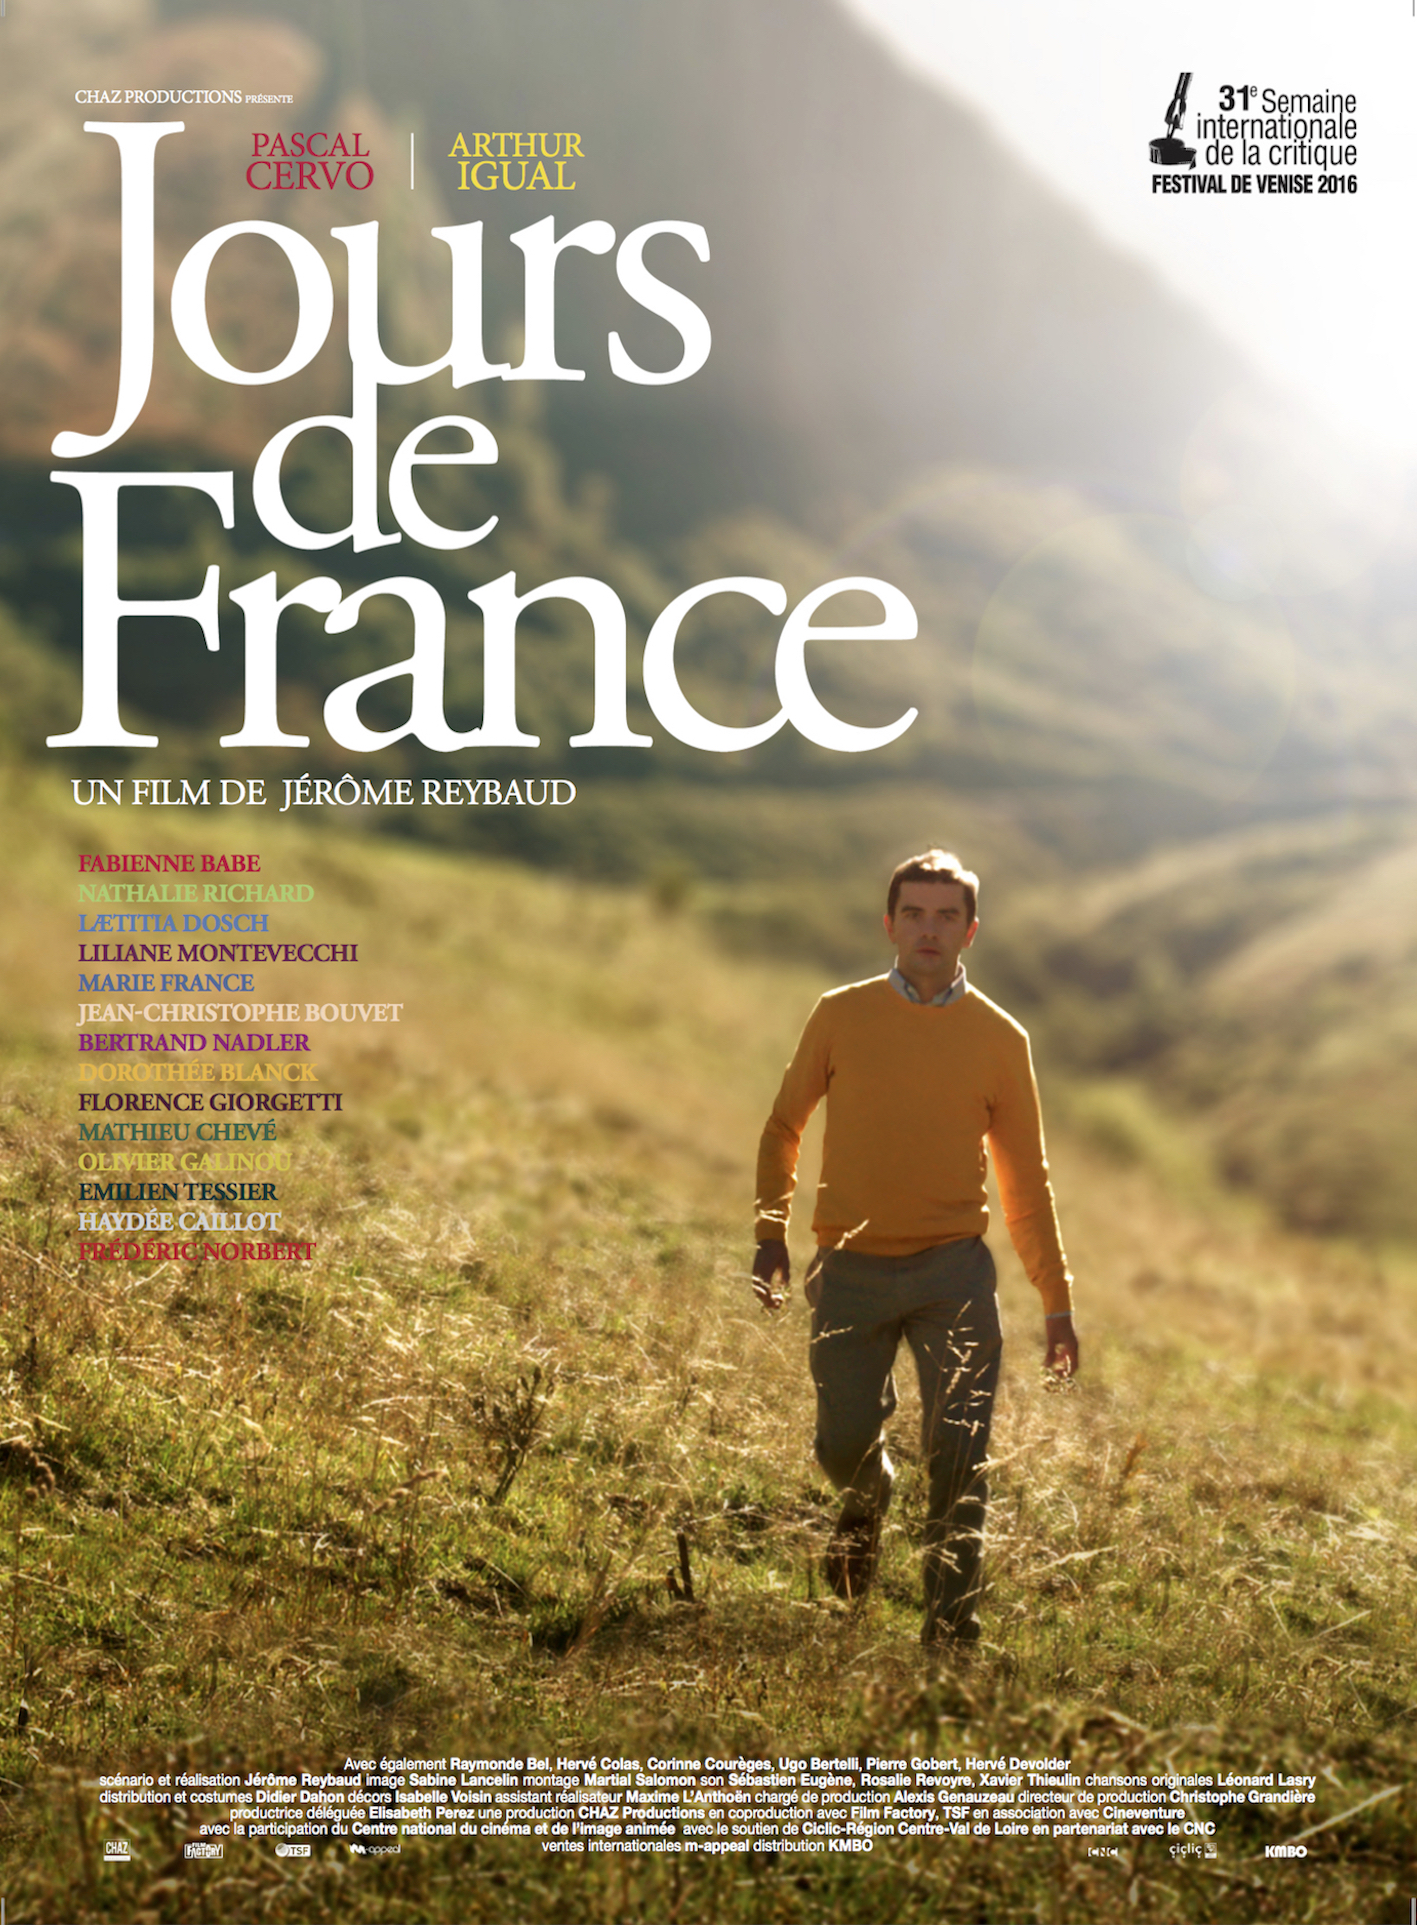 JOURS_DE_FRANCE_AFFICHE copie 2